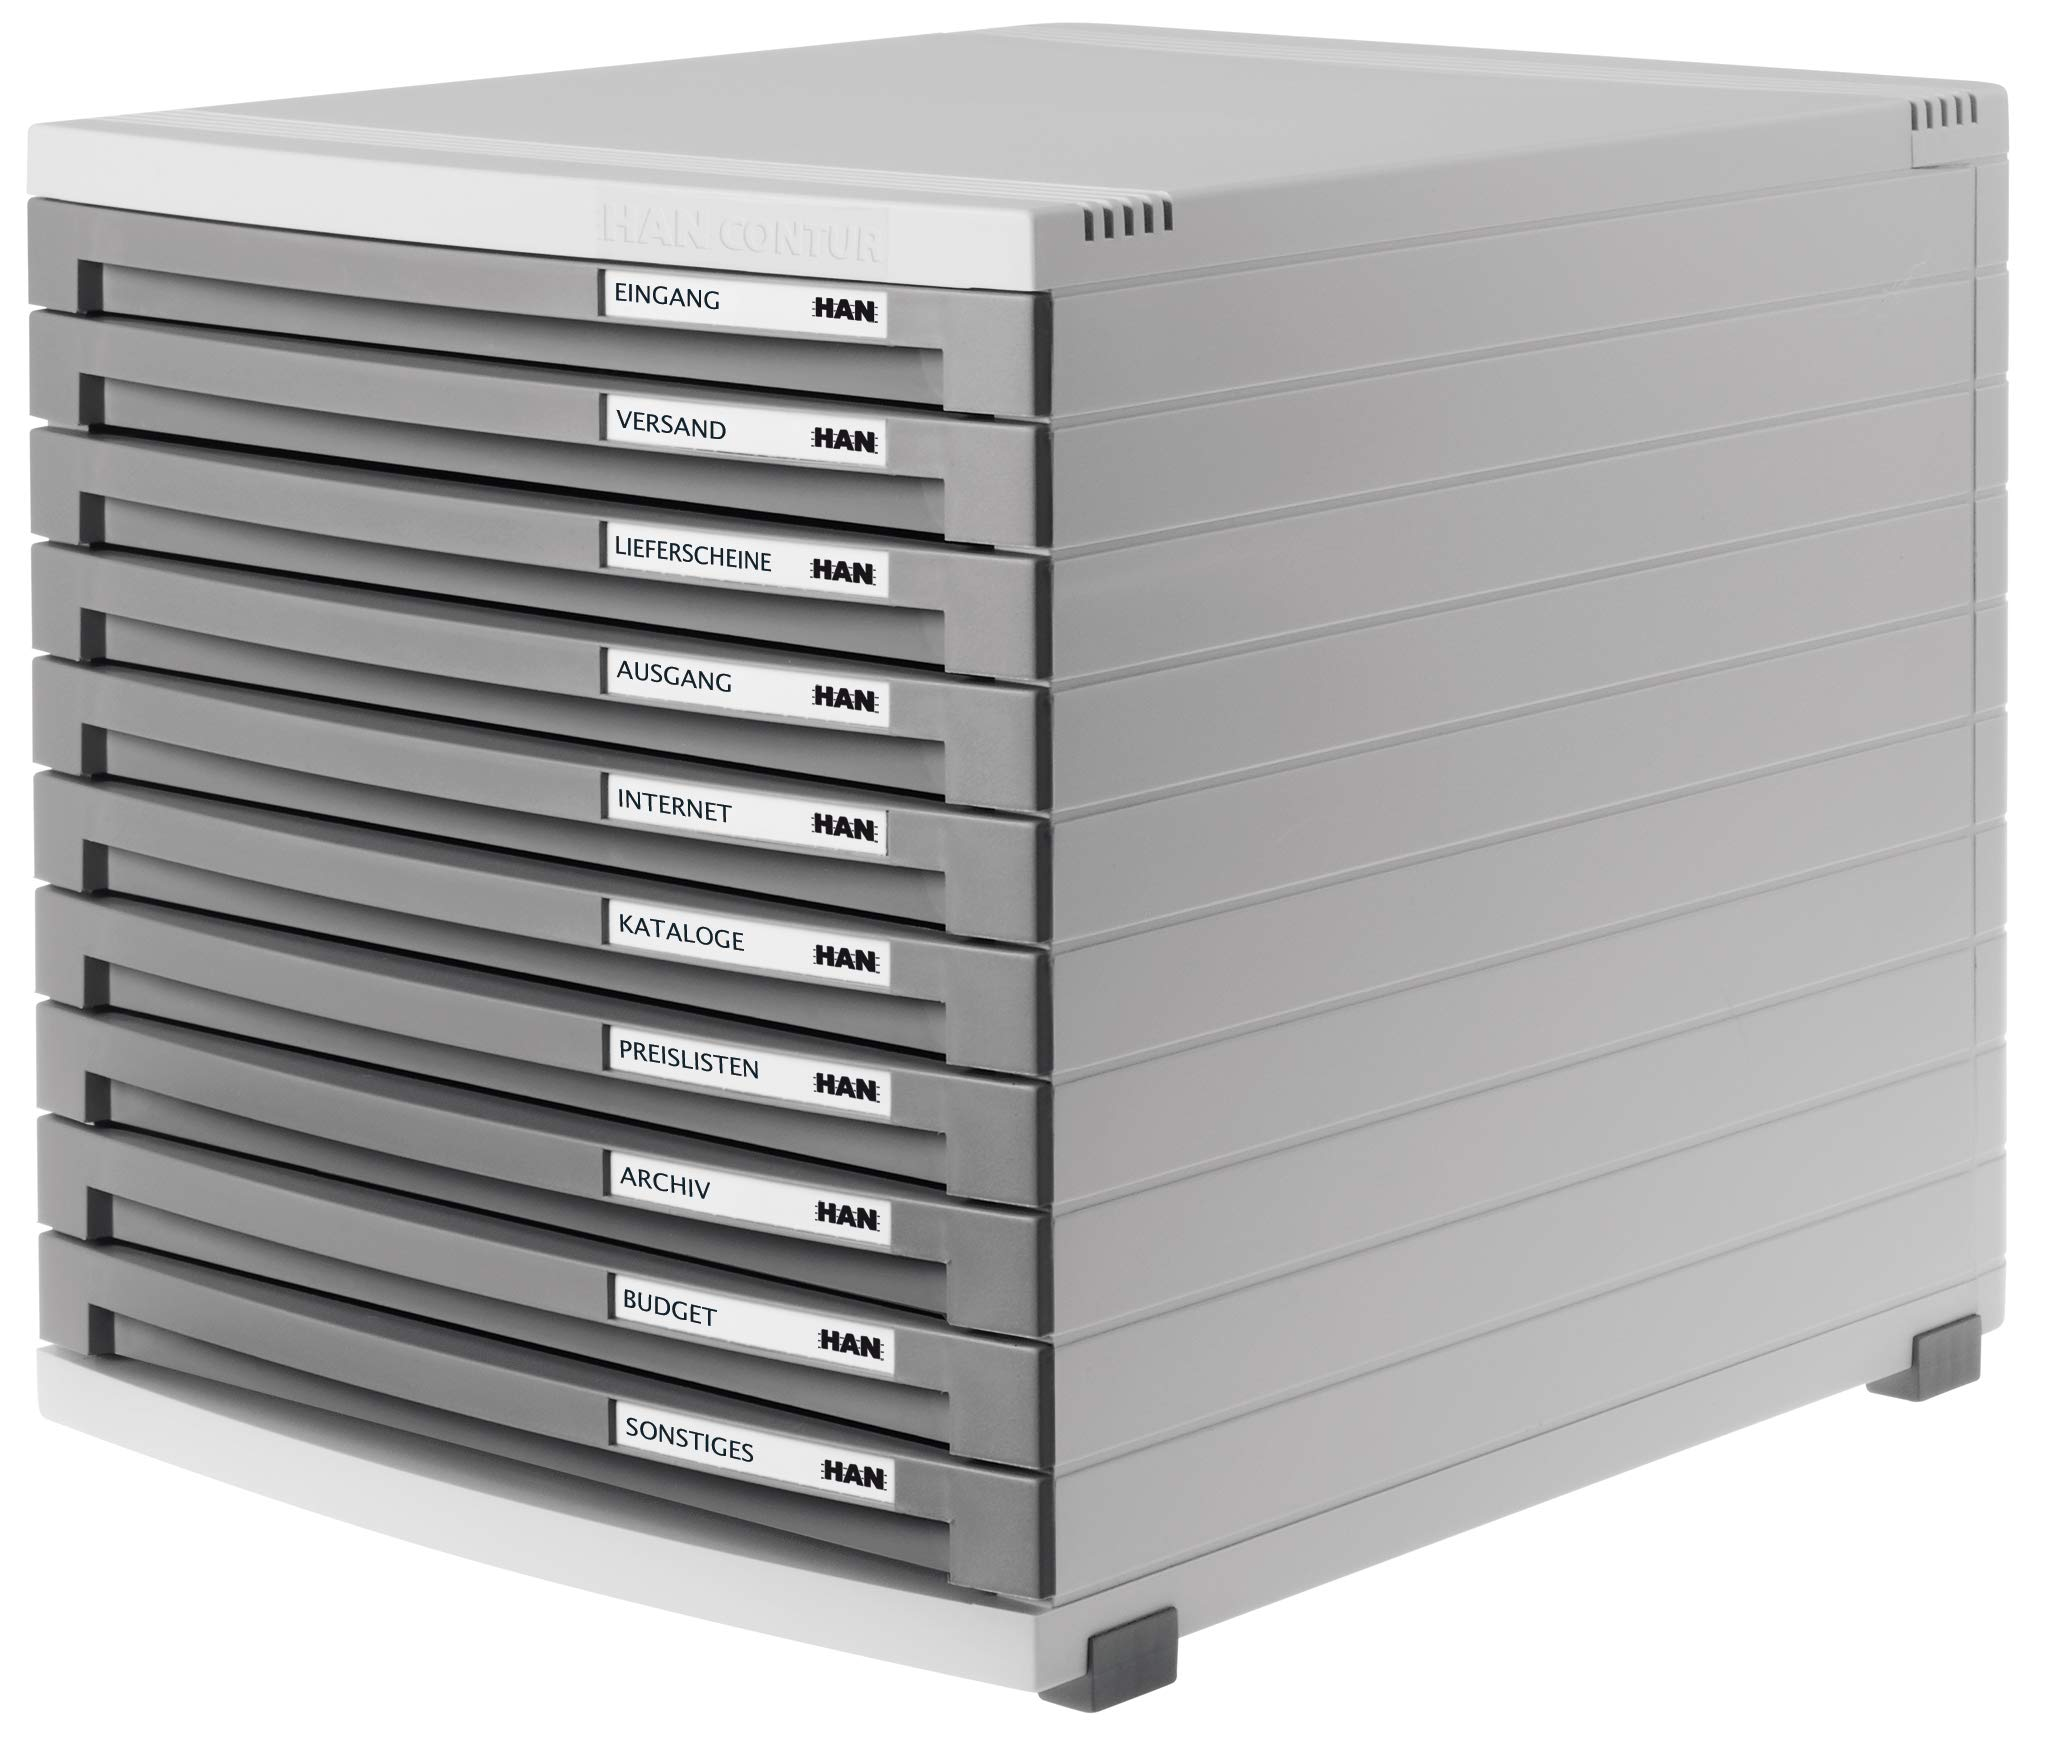 HAN 1510-19, CONTUR Drawer Set. Modern organisational System, Expandable, Premium Quality for a Highly Professional Organisation with 10 Closed Drawers, Light-Grey-Dark-Grey by HAN